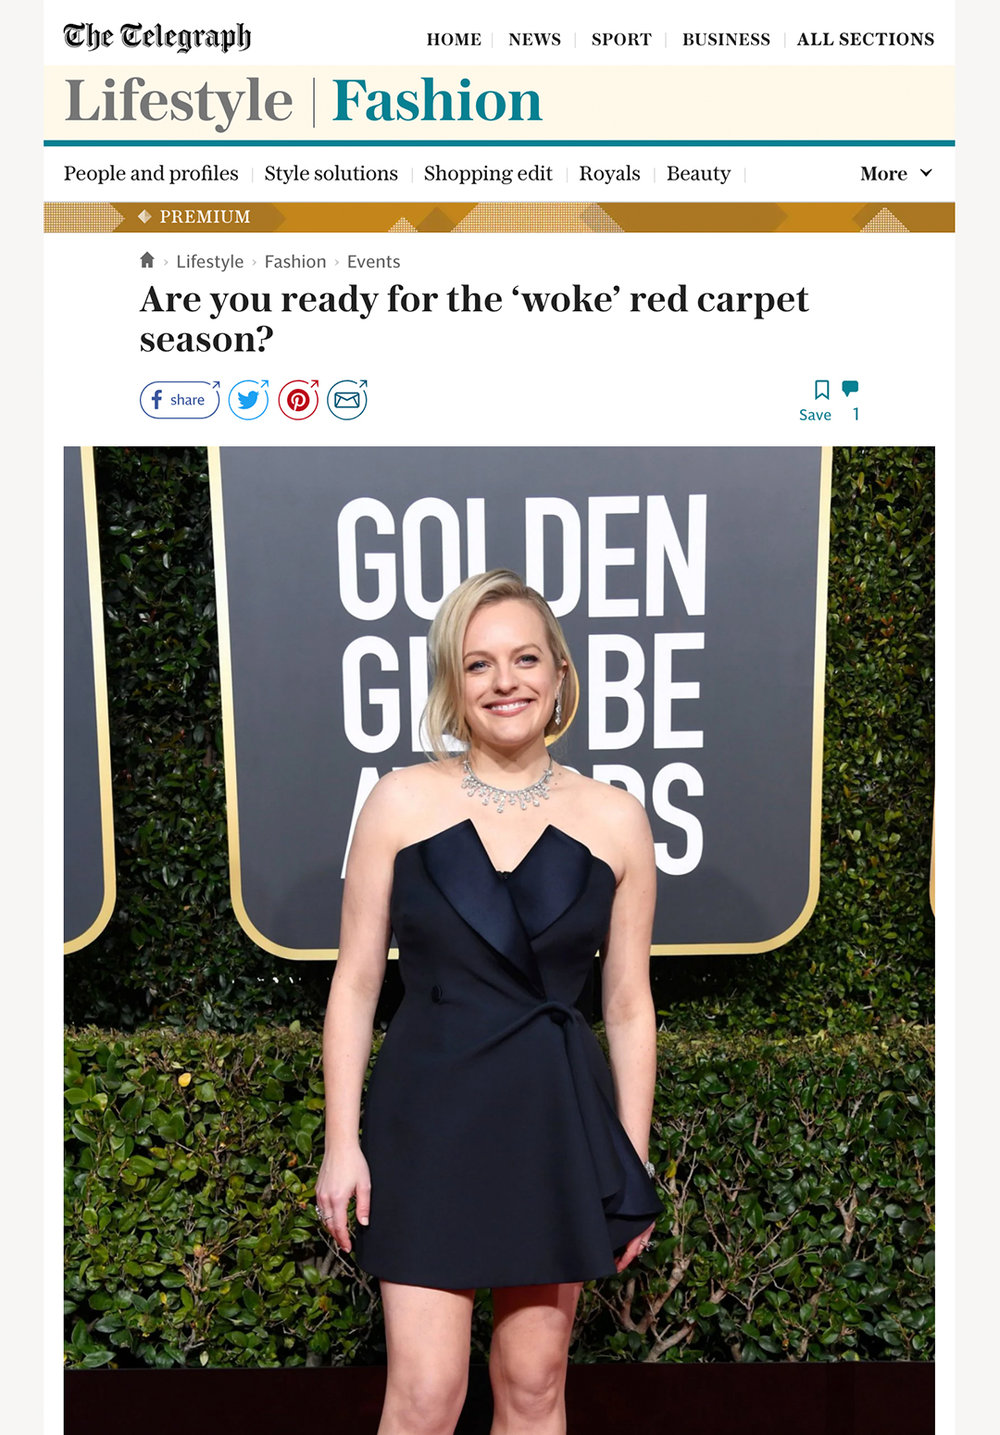 The telegraph - ARE YOU READY FOR THE 'WOKE' RED CARPET SEASON?